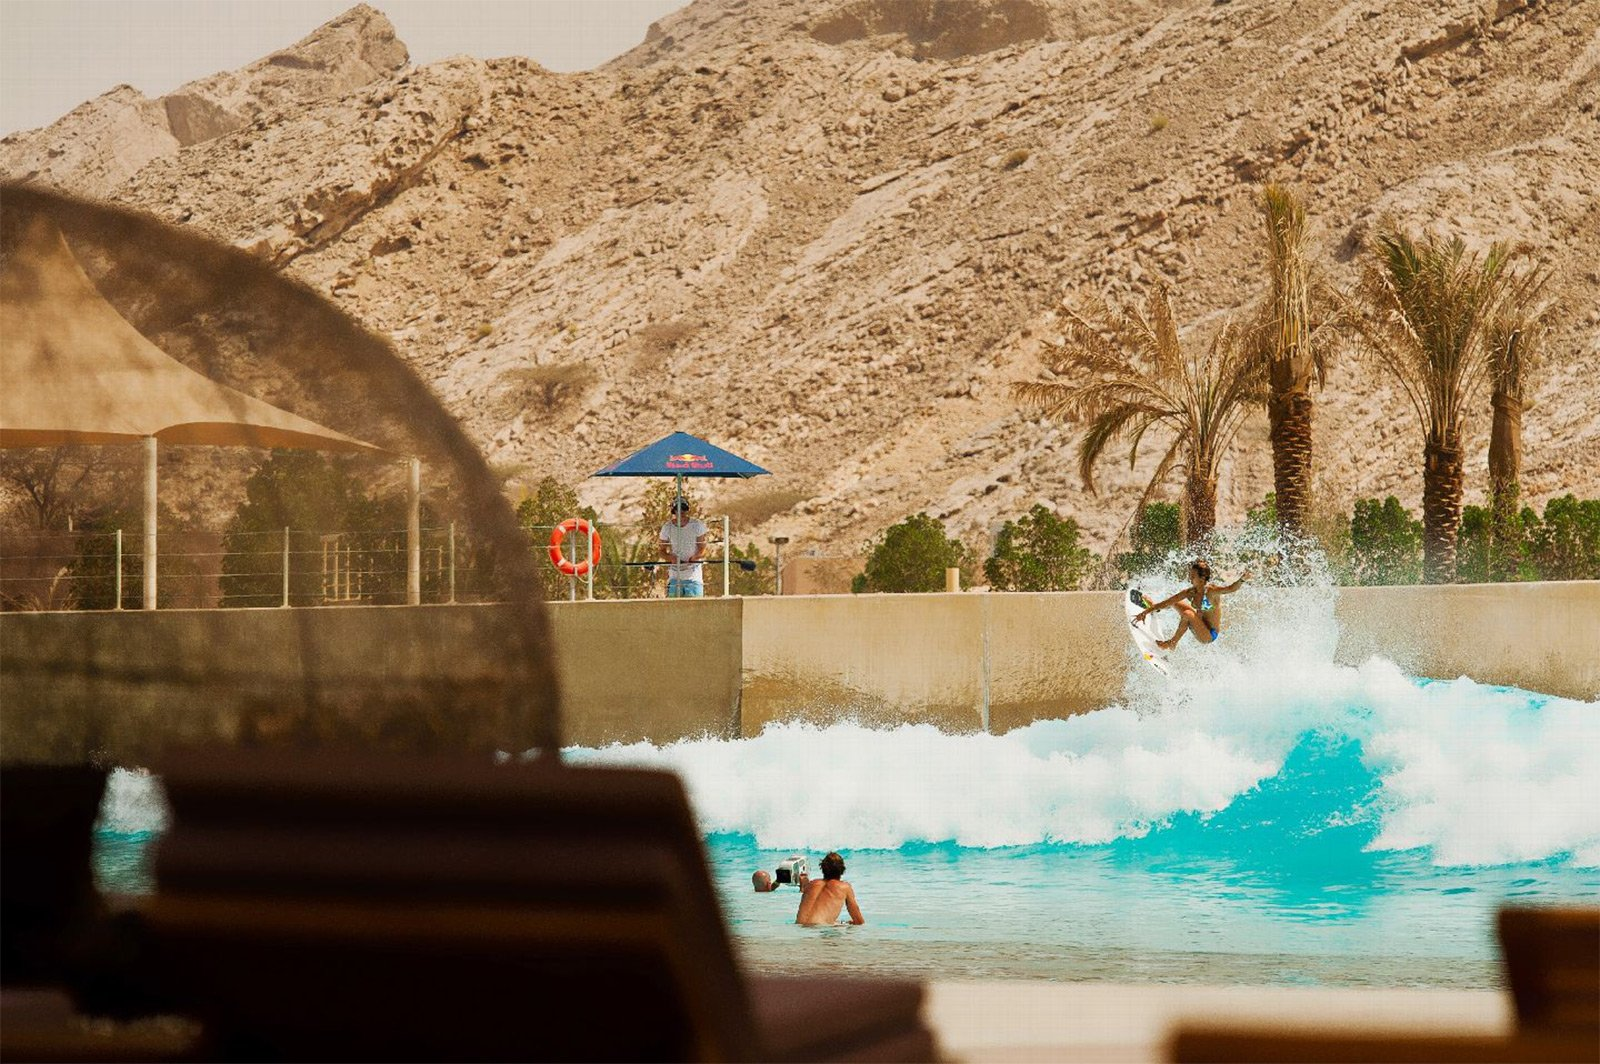 Aquapark «Wadi Adventure», Al Ain